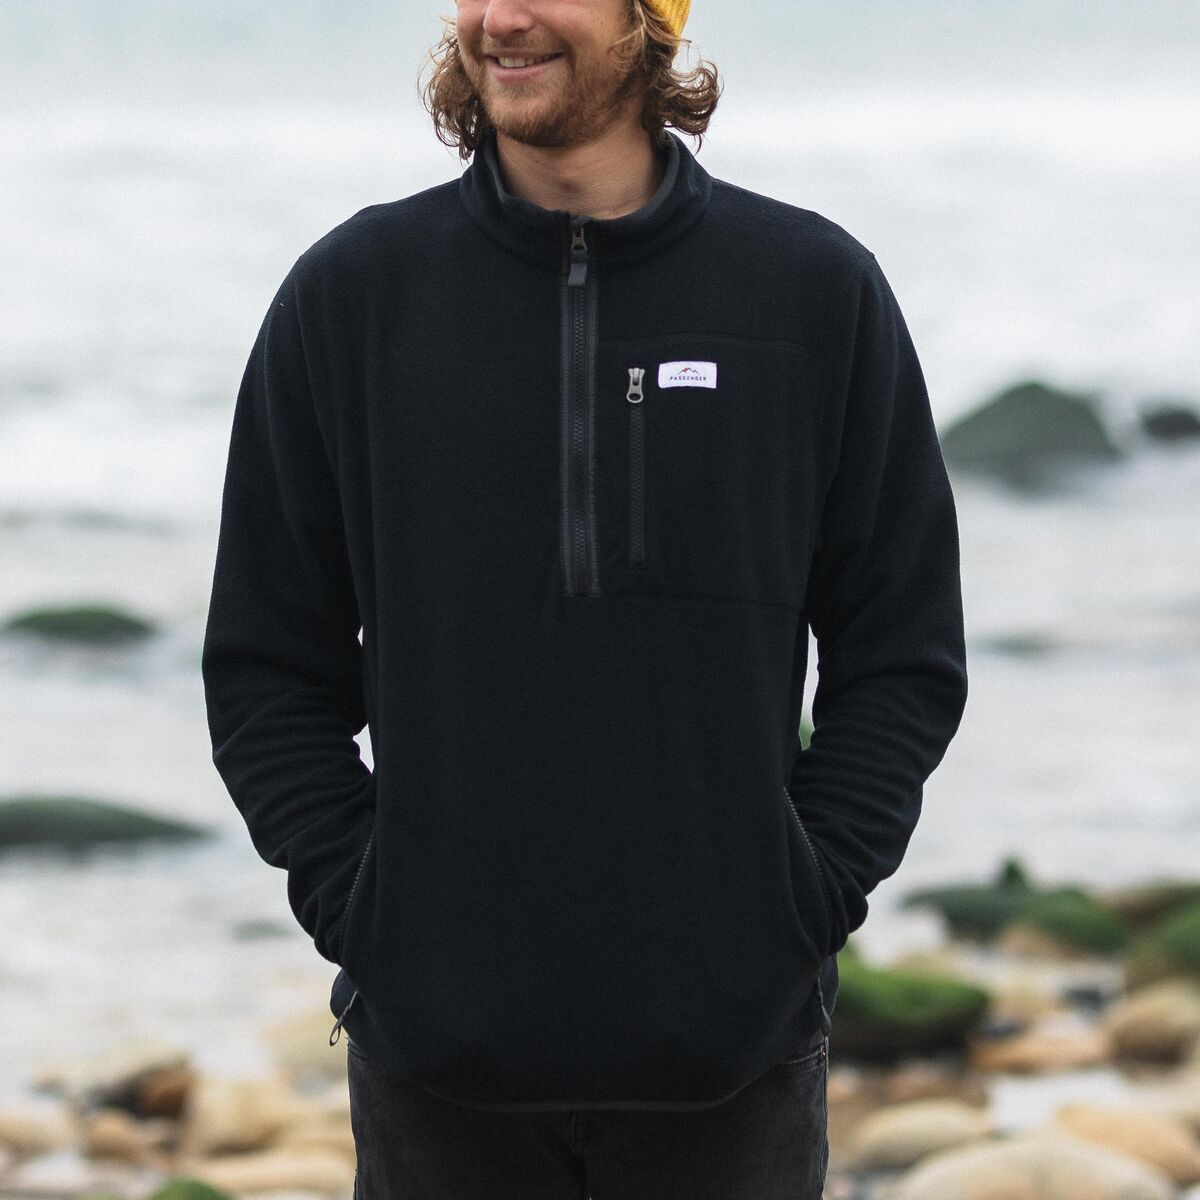 Jasper 1/4 Zip Polar Fleece - Black image 2